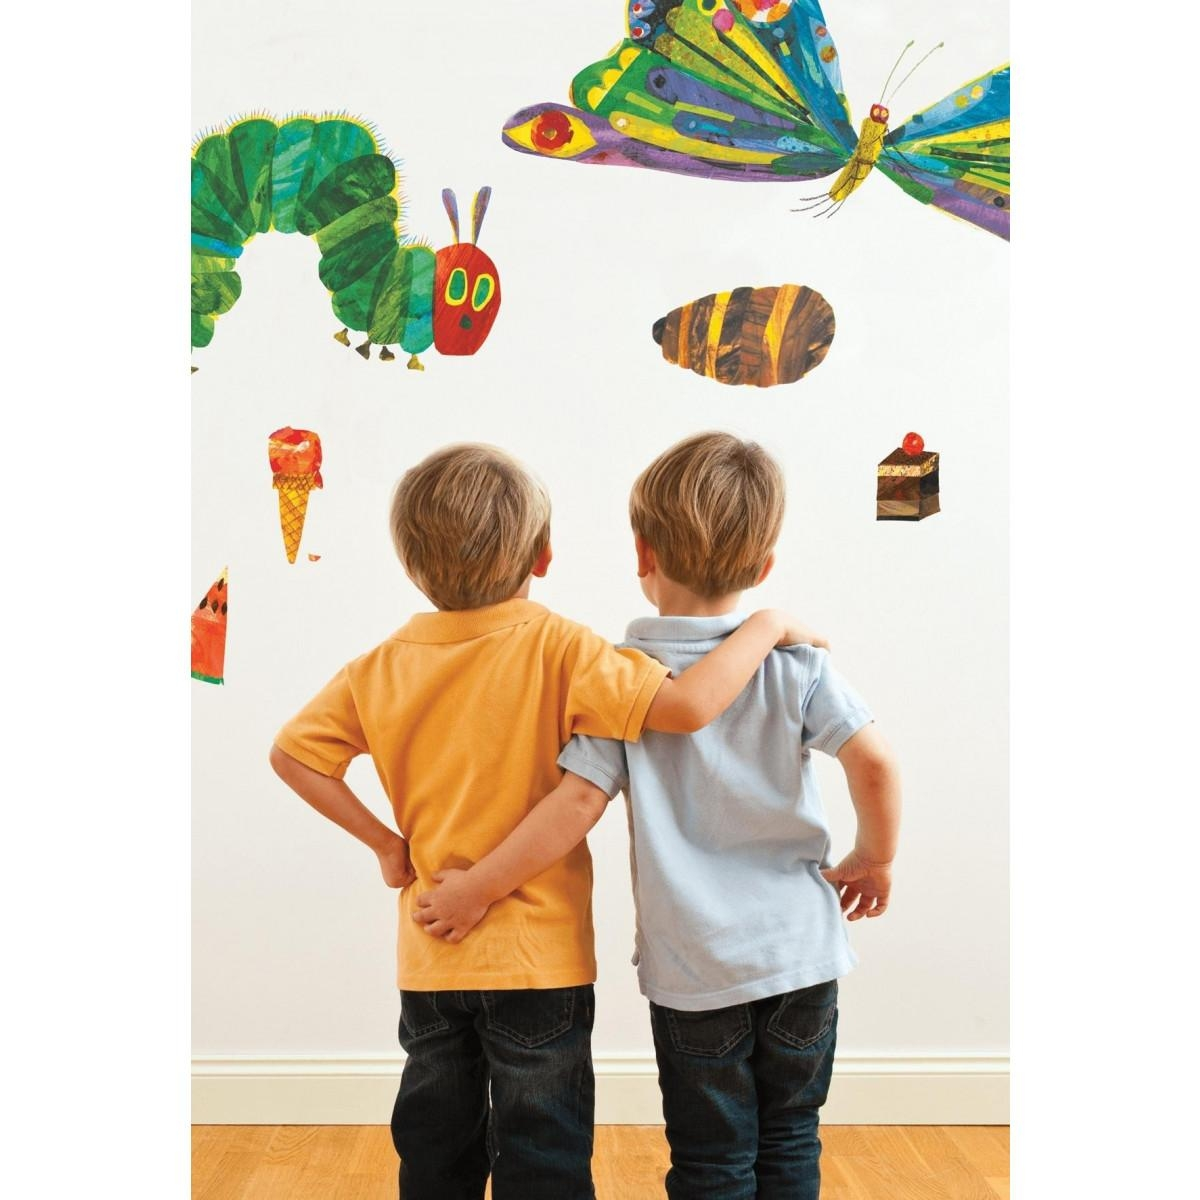 The Very Hungry Caterpillar 49 Room Decor Stickers Intended For The Very Hungry Caterpillar Wall Art (Image 17 of 20)